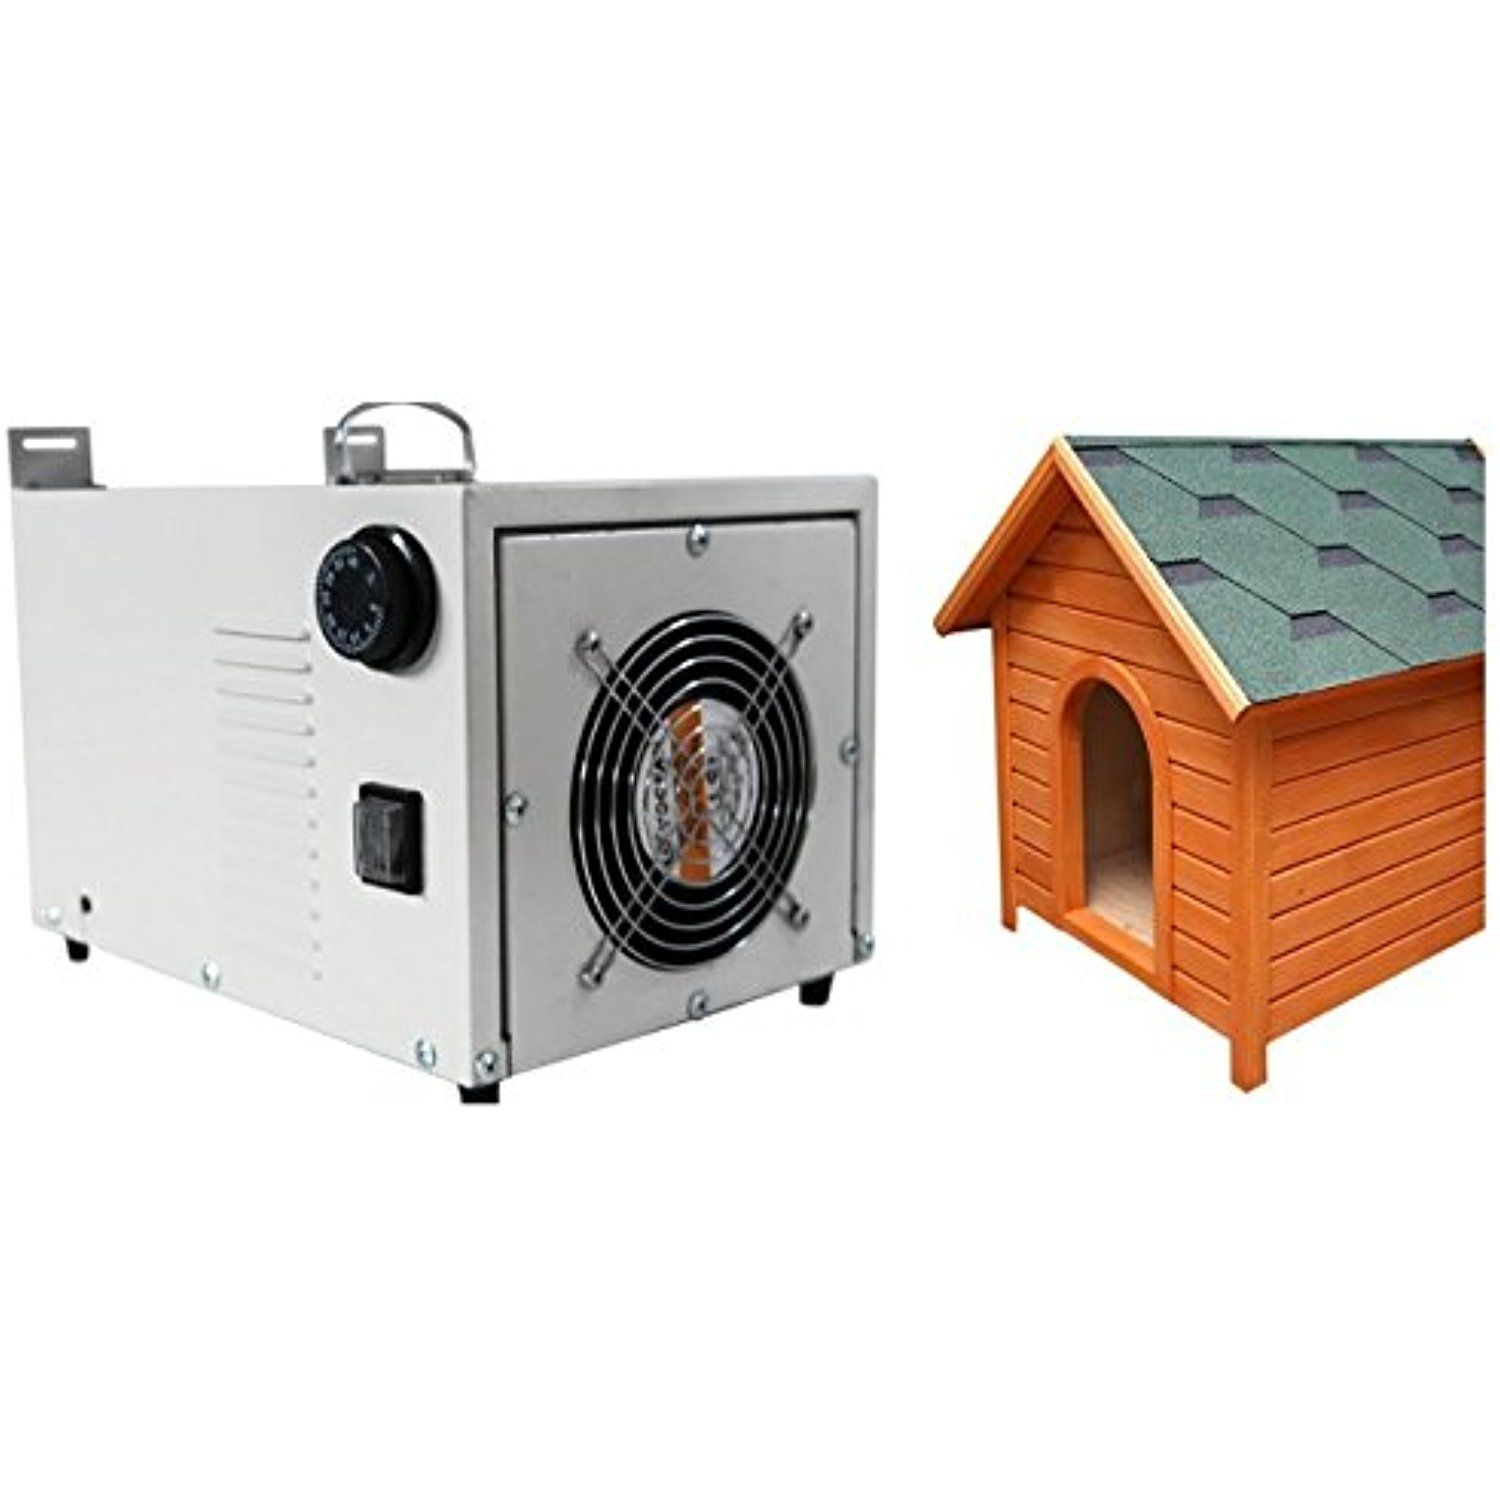 Hounditioner Dog House Air Conditioner You Can Get Additional